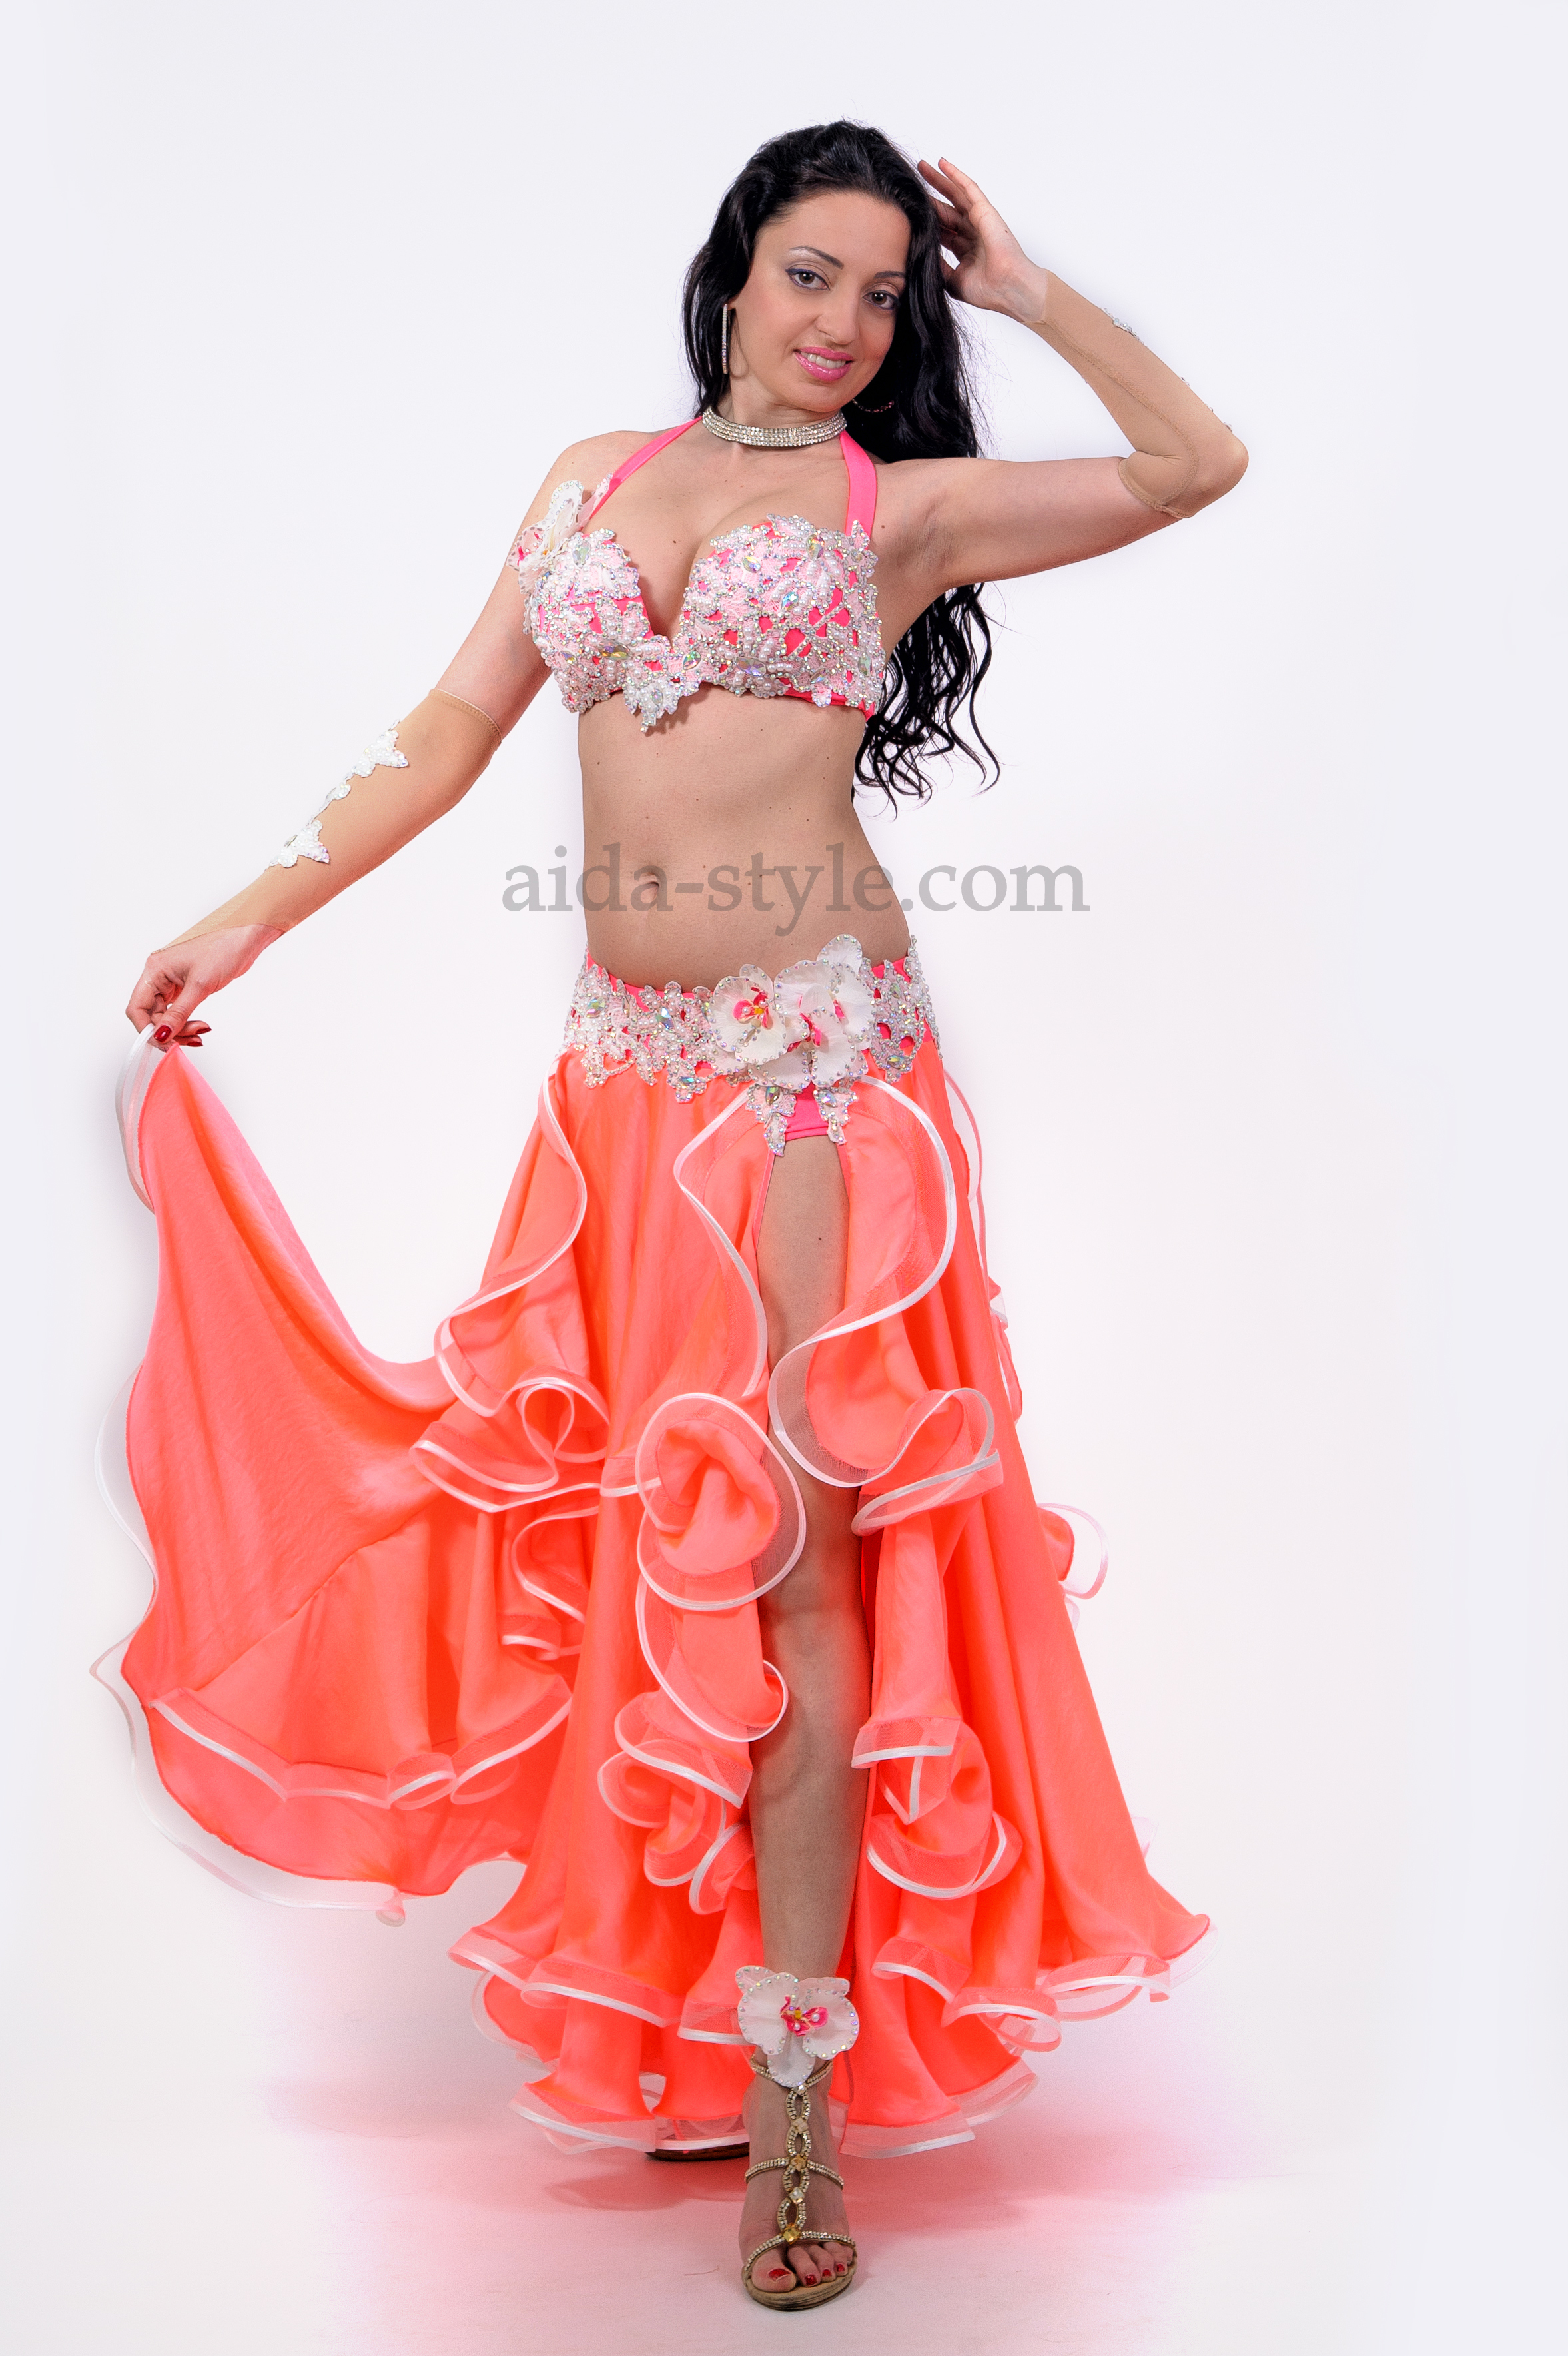 a98b414f18b8 Gentle pink professional belly dance costume with bouffant skirt, decorated  withflounces and artifisial flower on